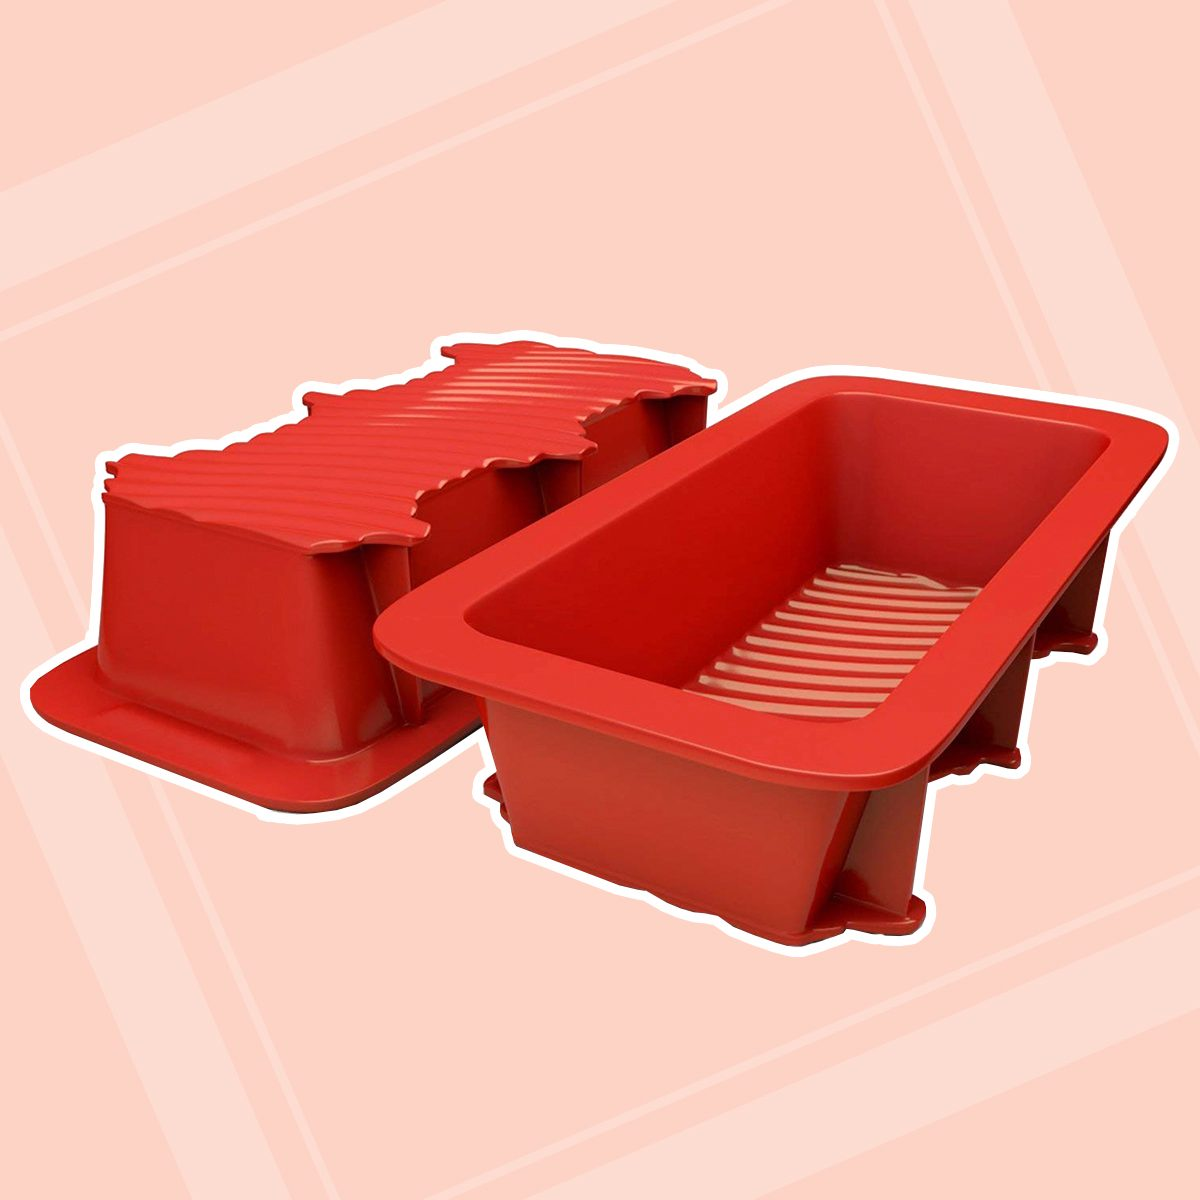 Silicone Bread and Loaf Pan Set of 2 Red, Nonstick